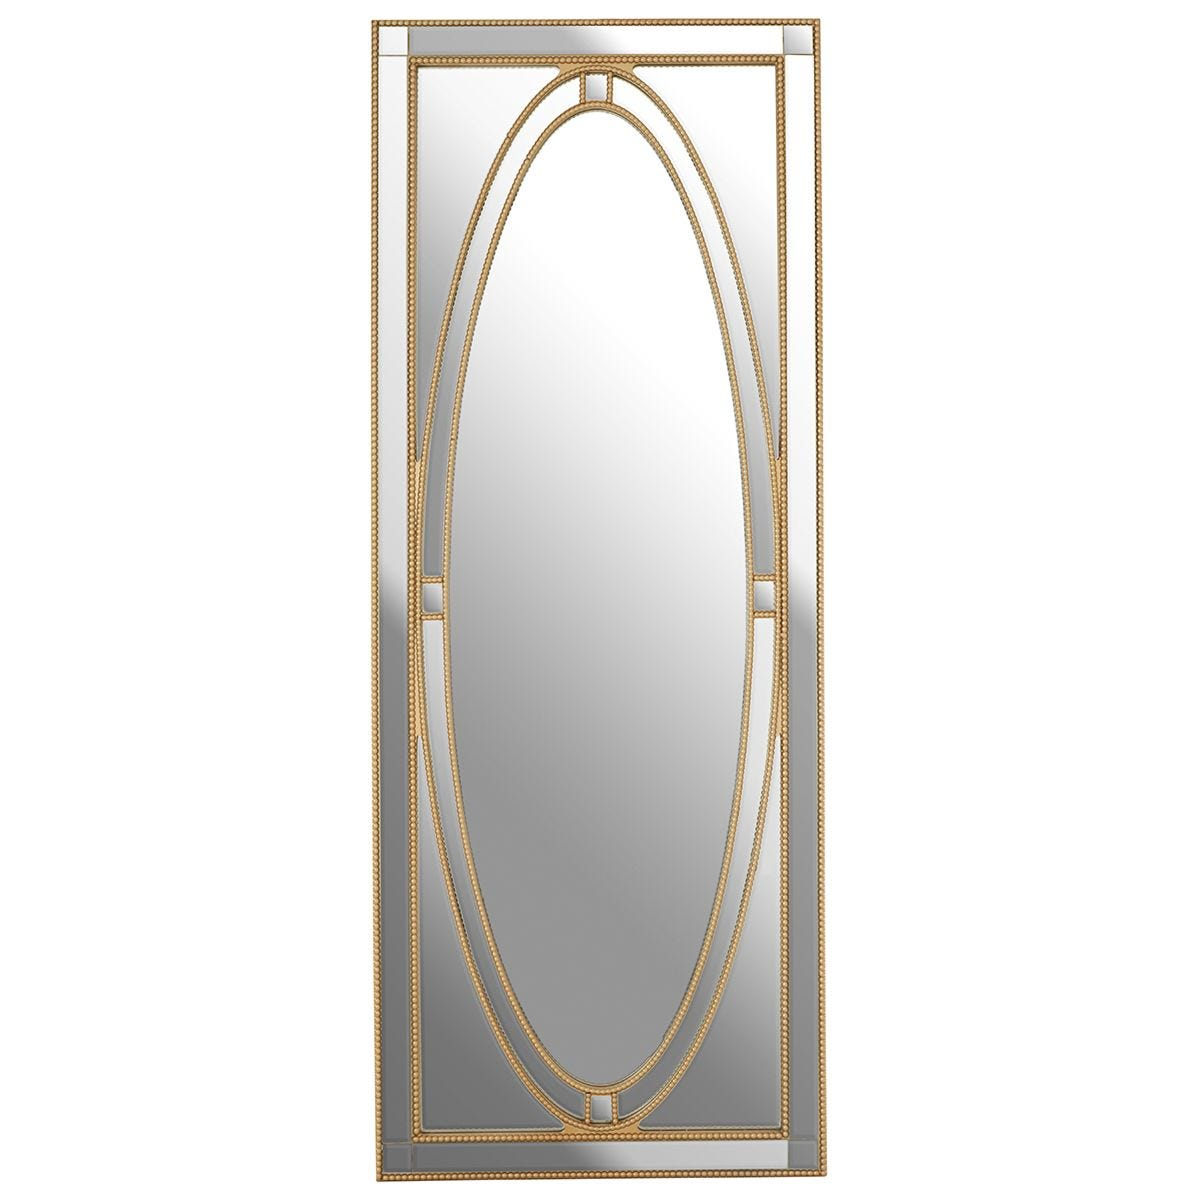 Premier Housewares Gavra Wall Mirror - Gold Finish